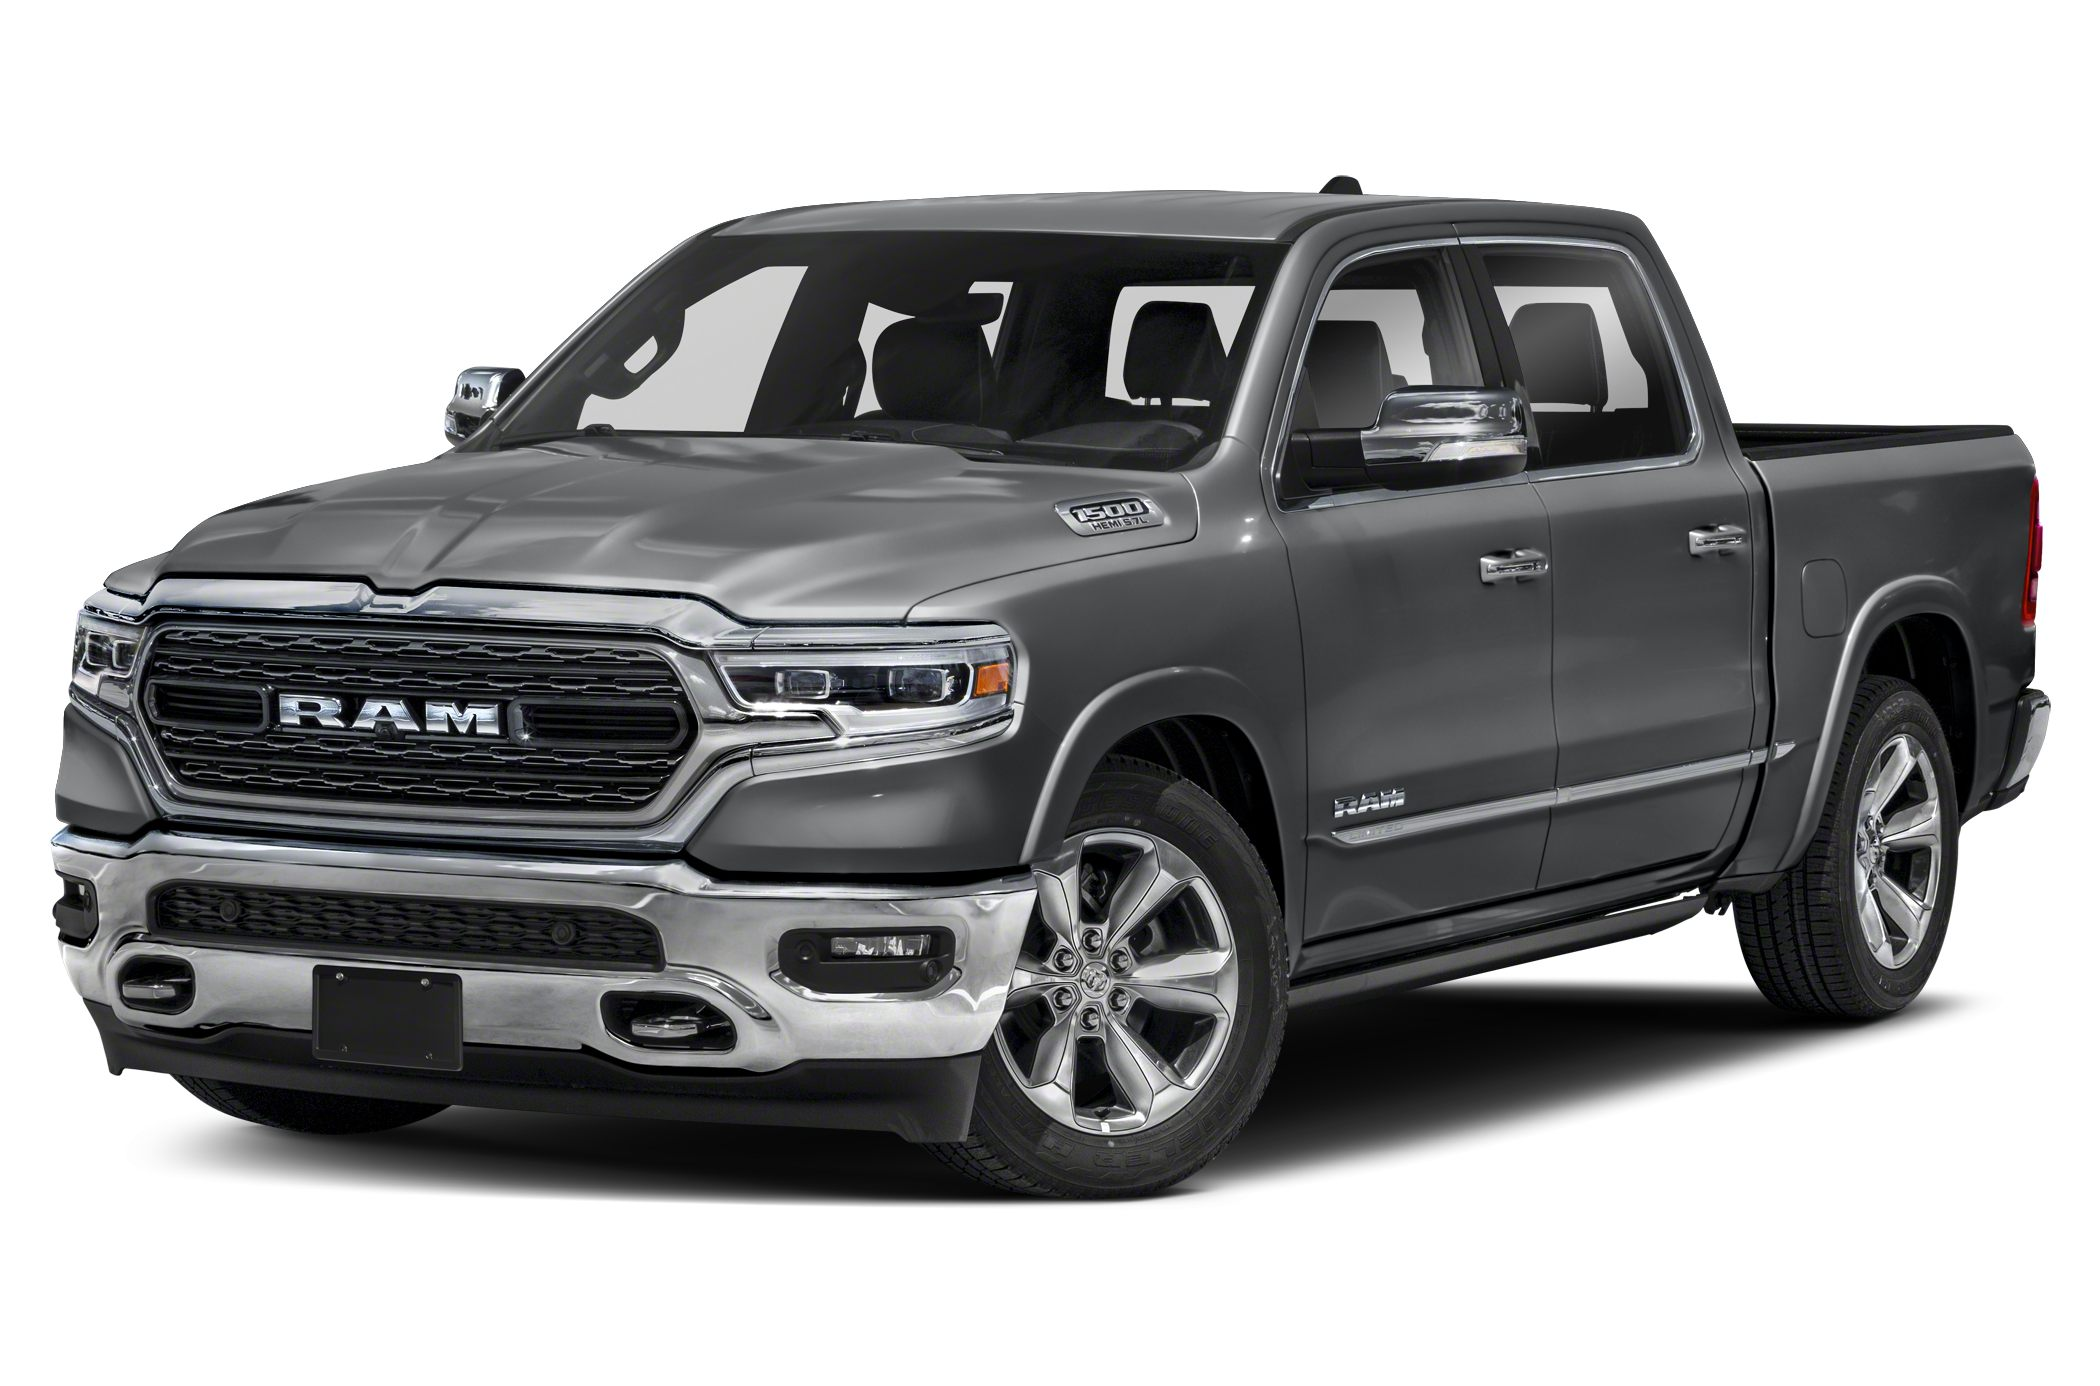 2019 RAM 1500 Limited 4x4 Crew Cab 153.5 in. WB